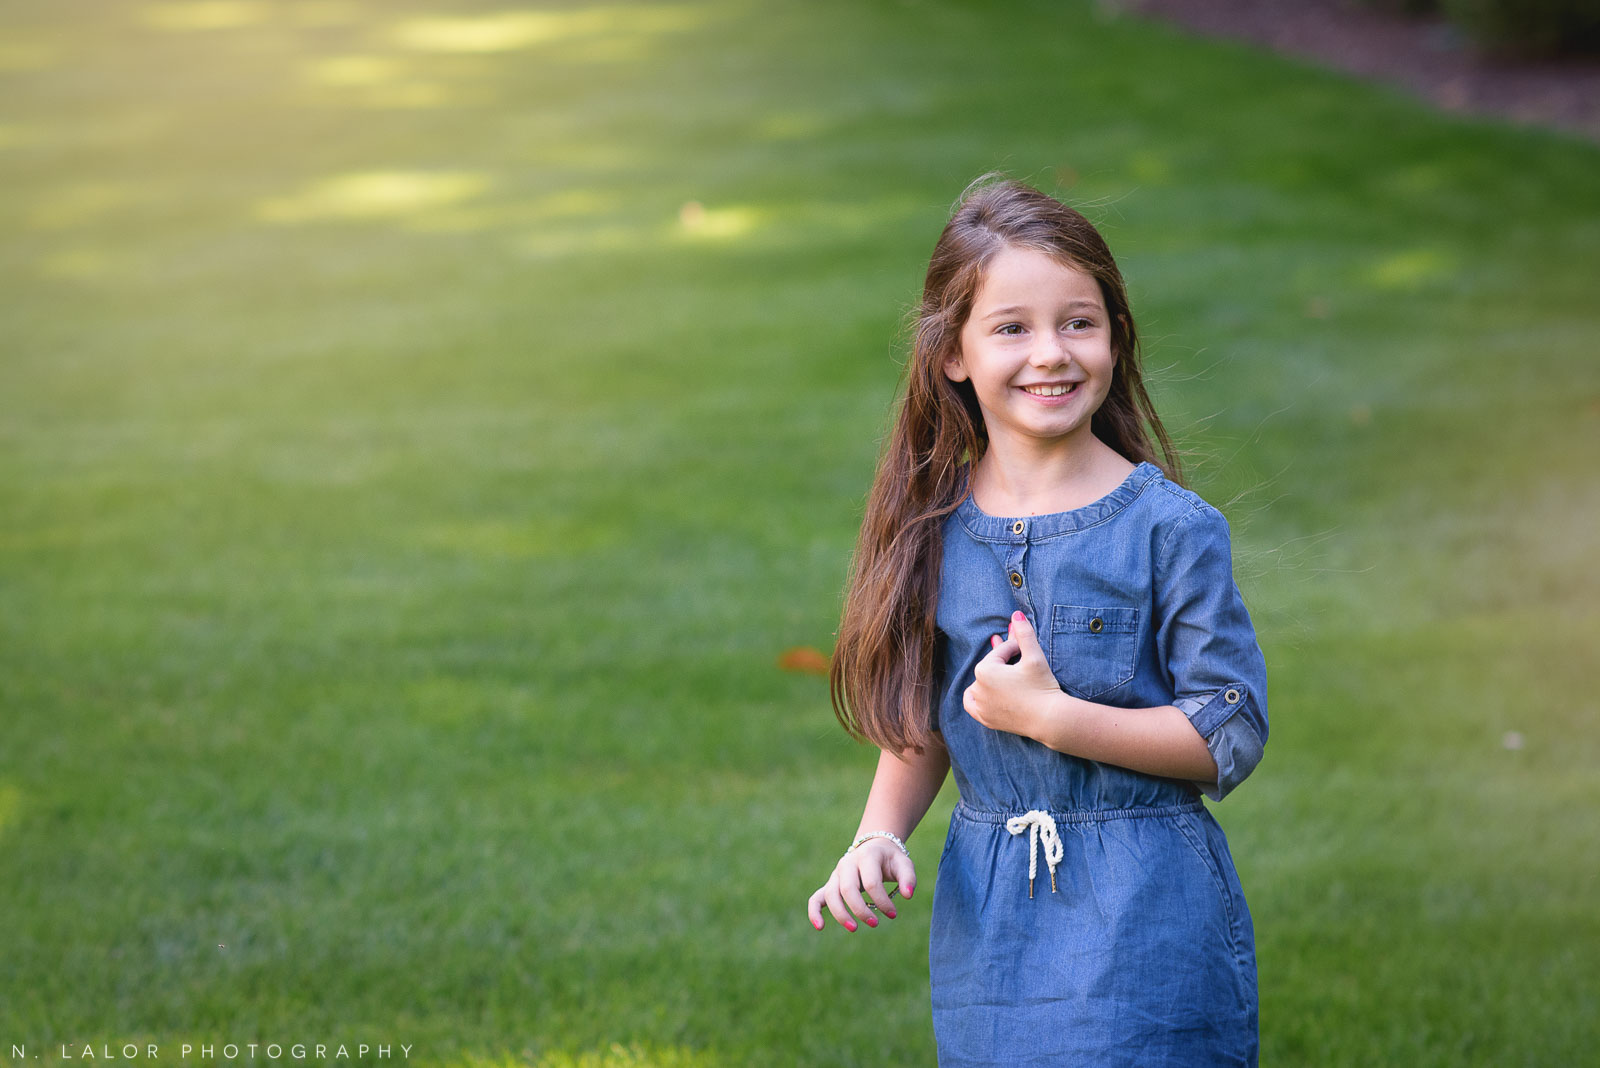 Naturally styled candid portrait of a 6-year old girl by N. Lalor Photography.